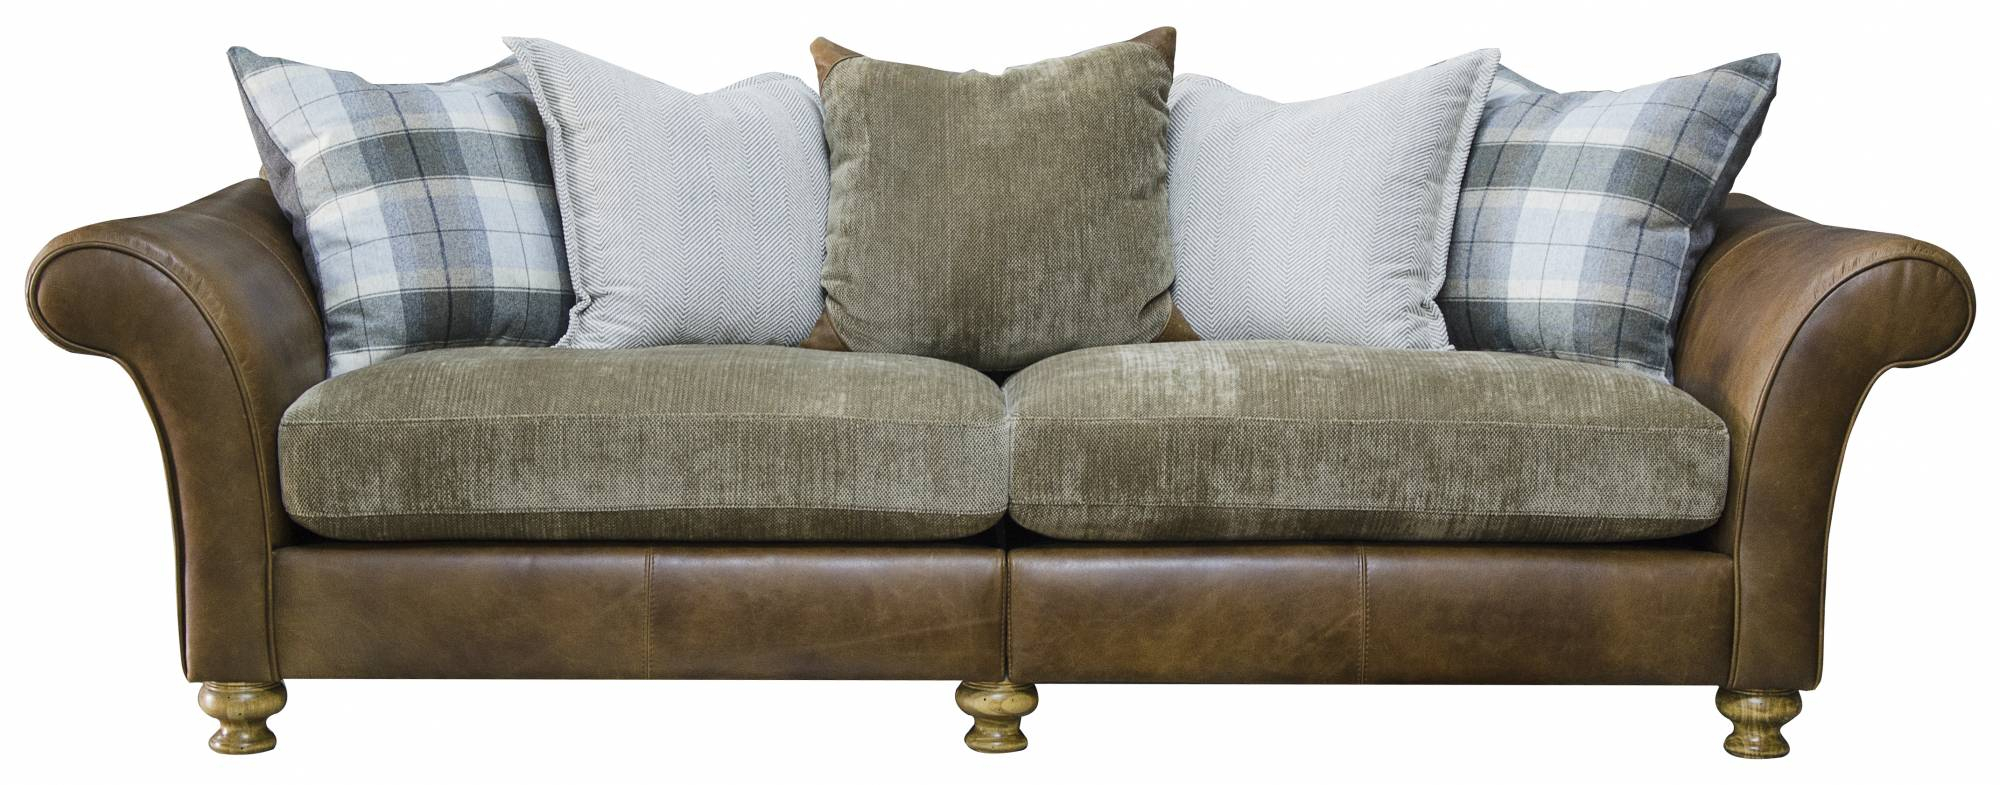 Highlander 4 Seater Leather Sofa (Grade 1) | Sofas For Four Seater Sofas (View 12 of 15)